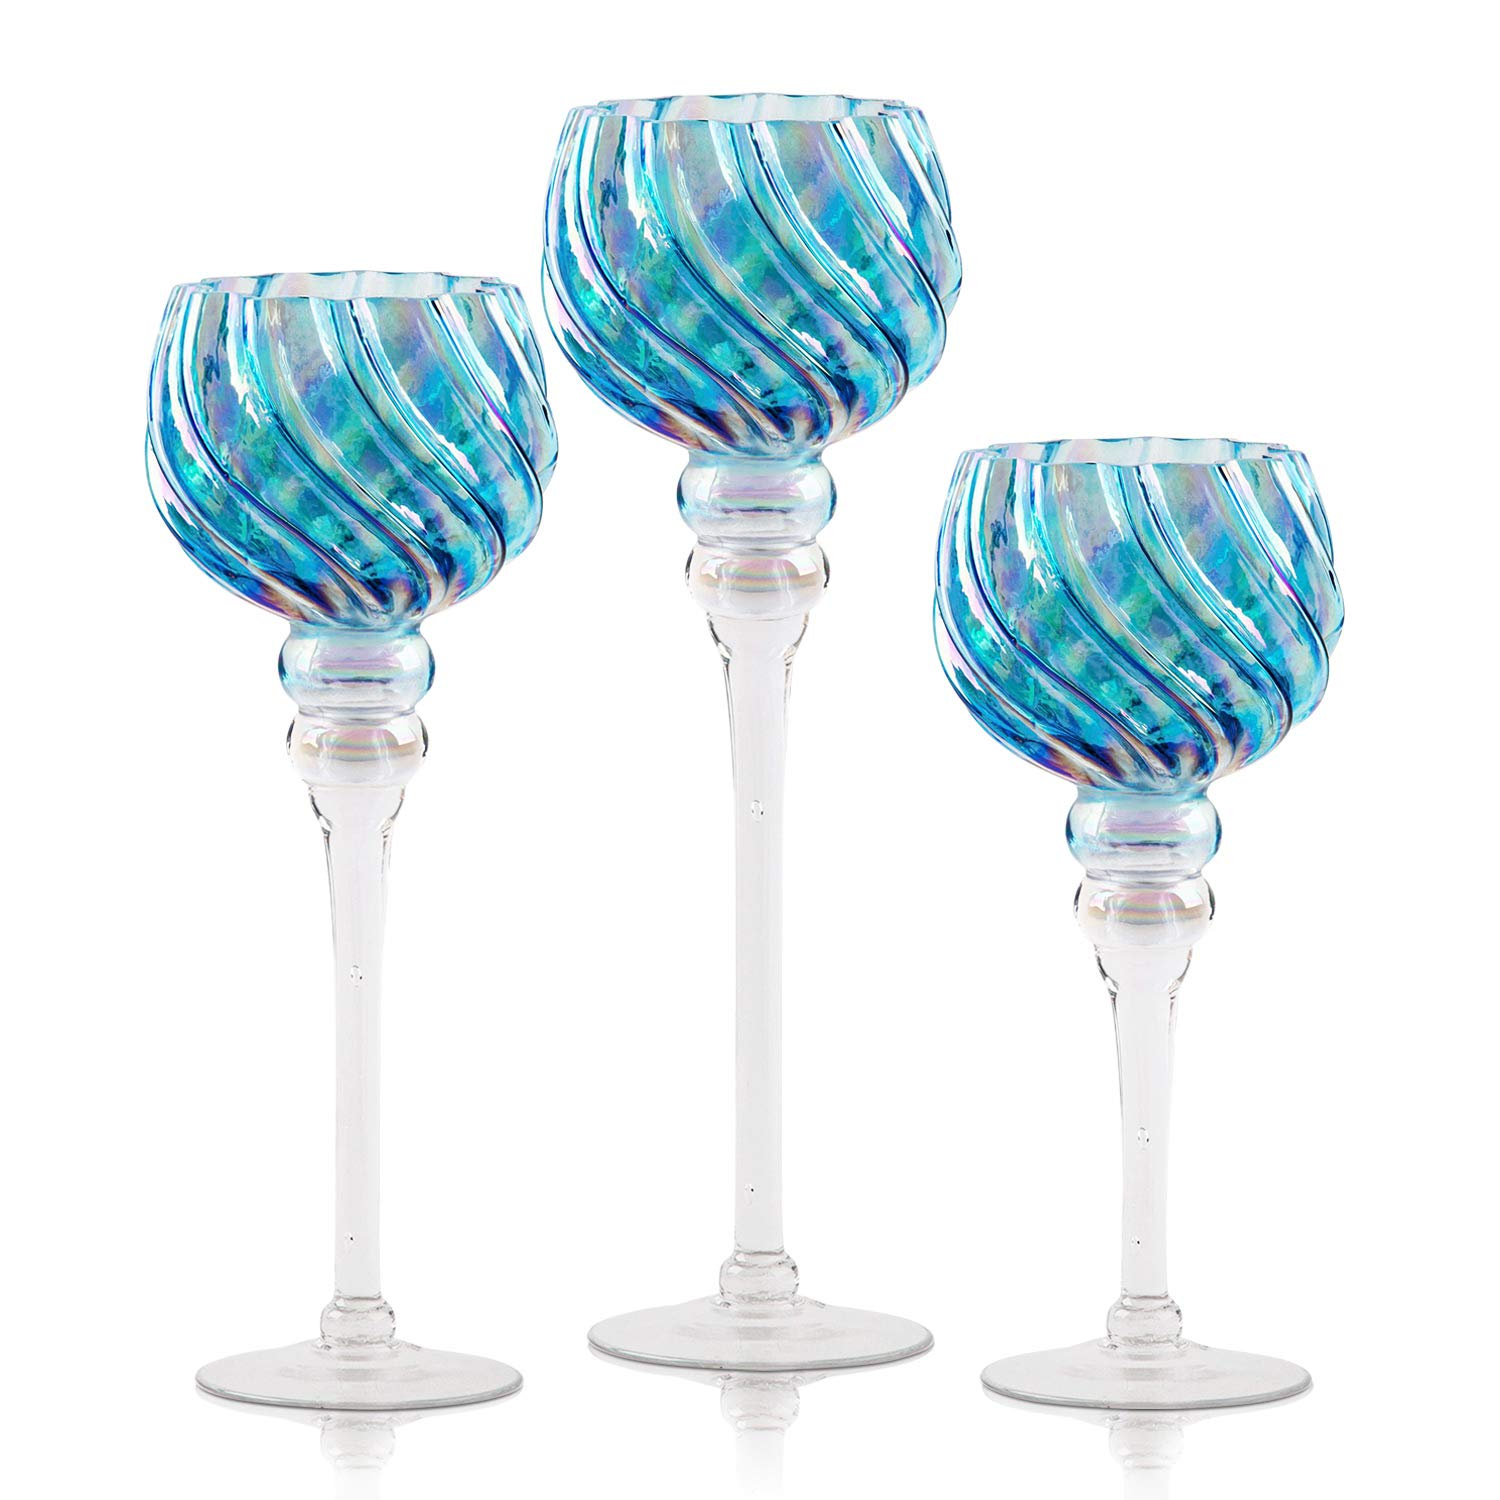 Hurricane Candle Holders Glass Set   3-Piece Blue Tall & Attractive Votive, Pillar & Tealight Long Stem Candleholders   Ideal for Wedding Centerpiece, Home Decor, Parties, Table Settings & Gifts